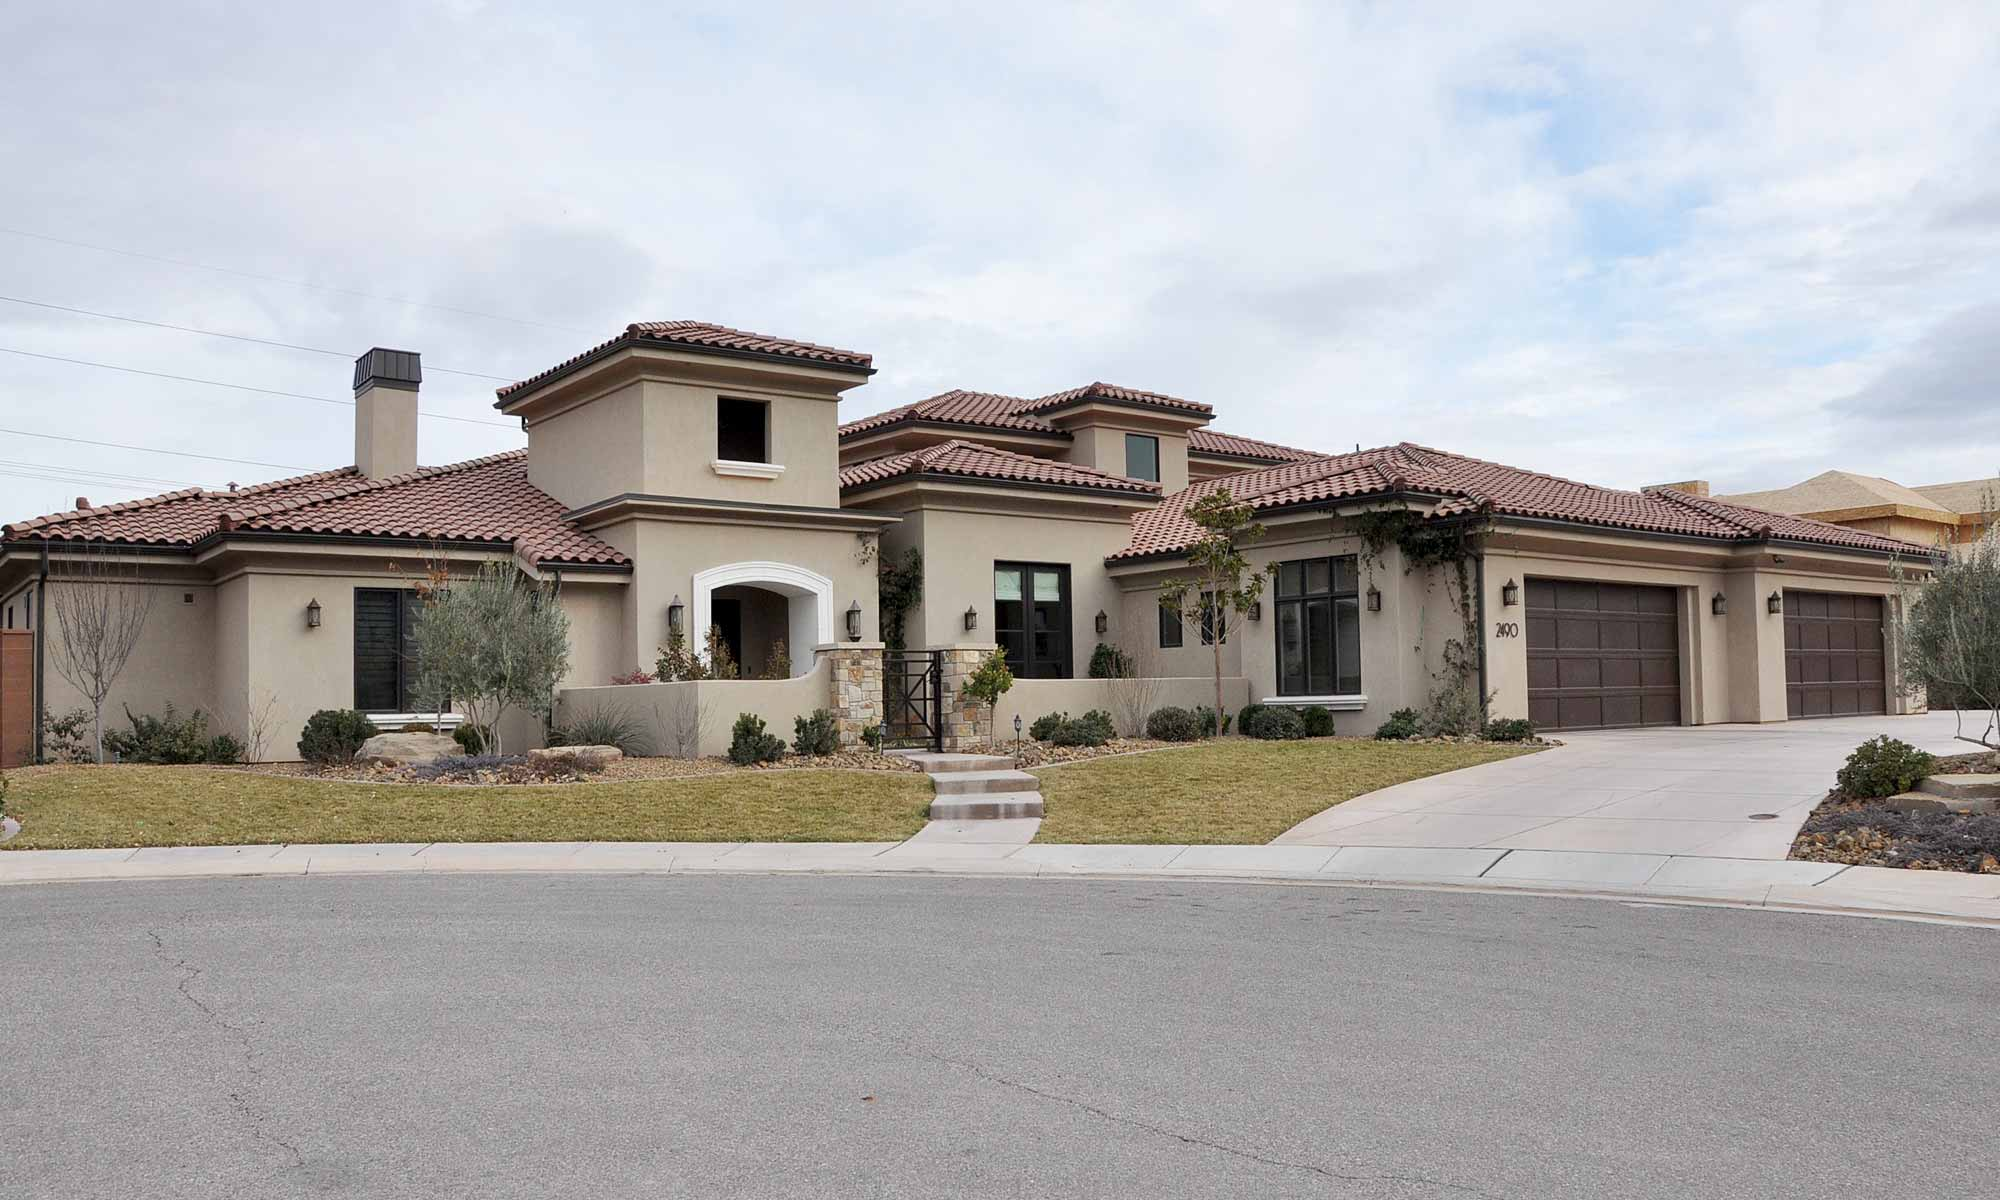 Large Car Garage Homes In St George Ut